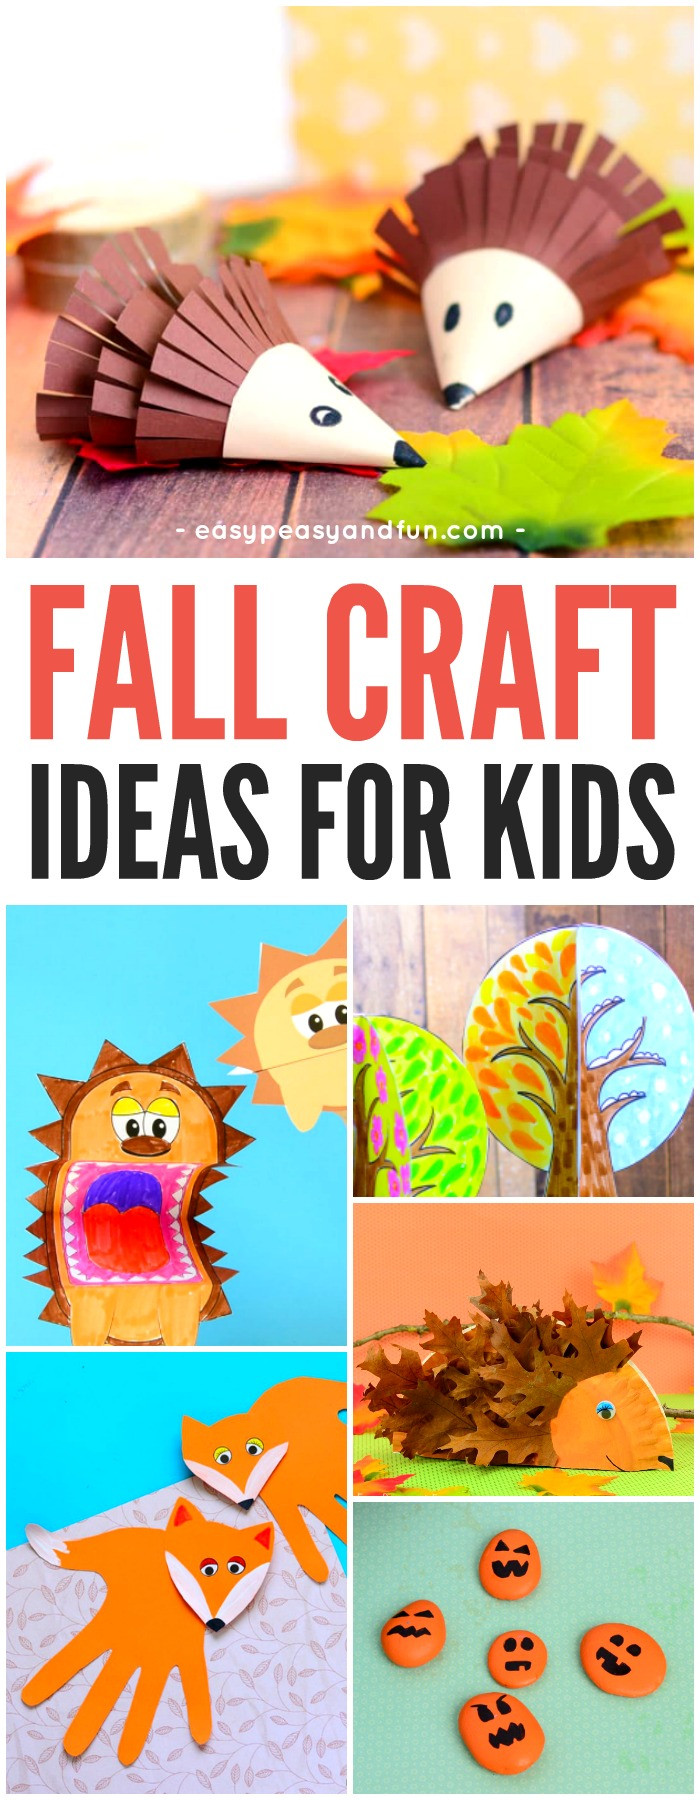 Fall Crafts Ideas For Kids  Fall Crafts For Kids Art and Craft Ideas Easy Peasy